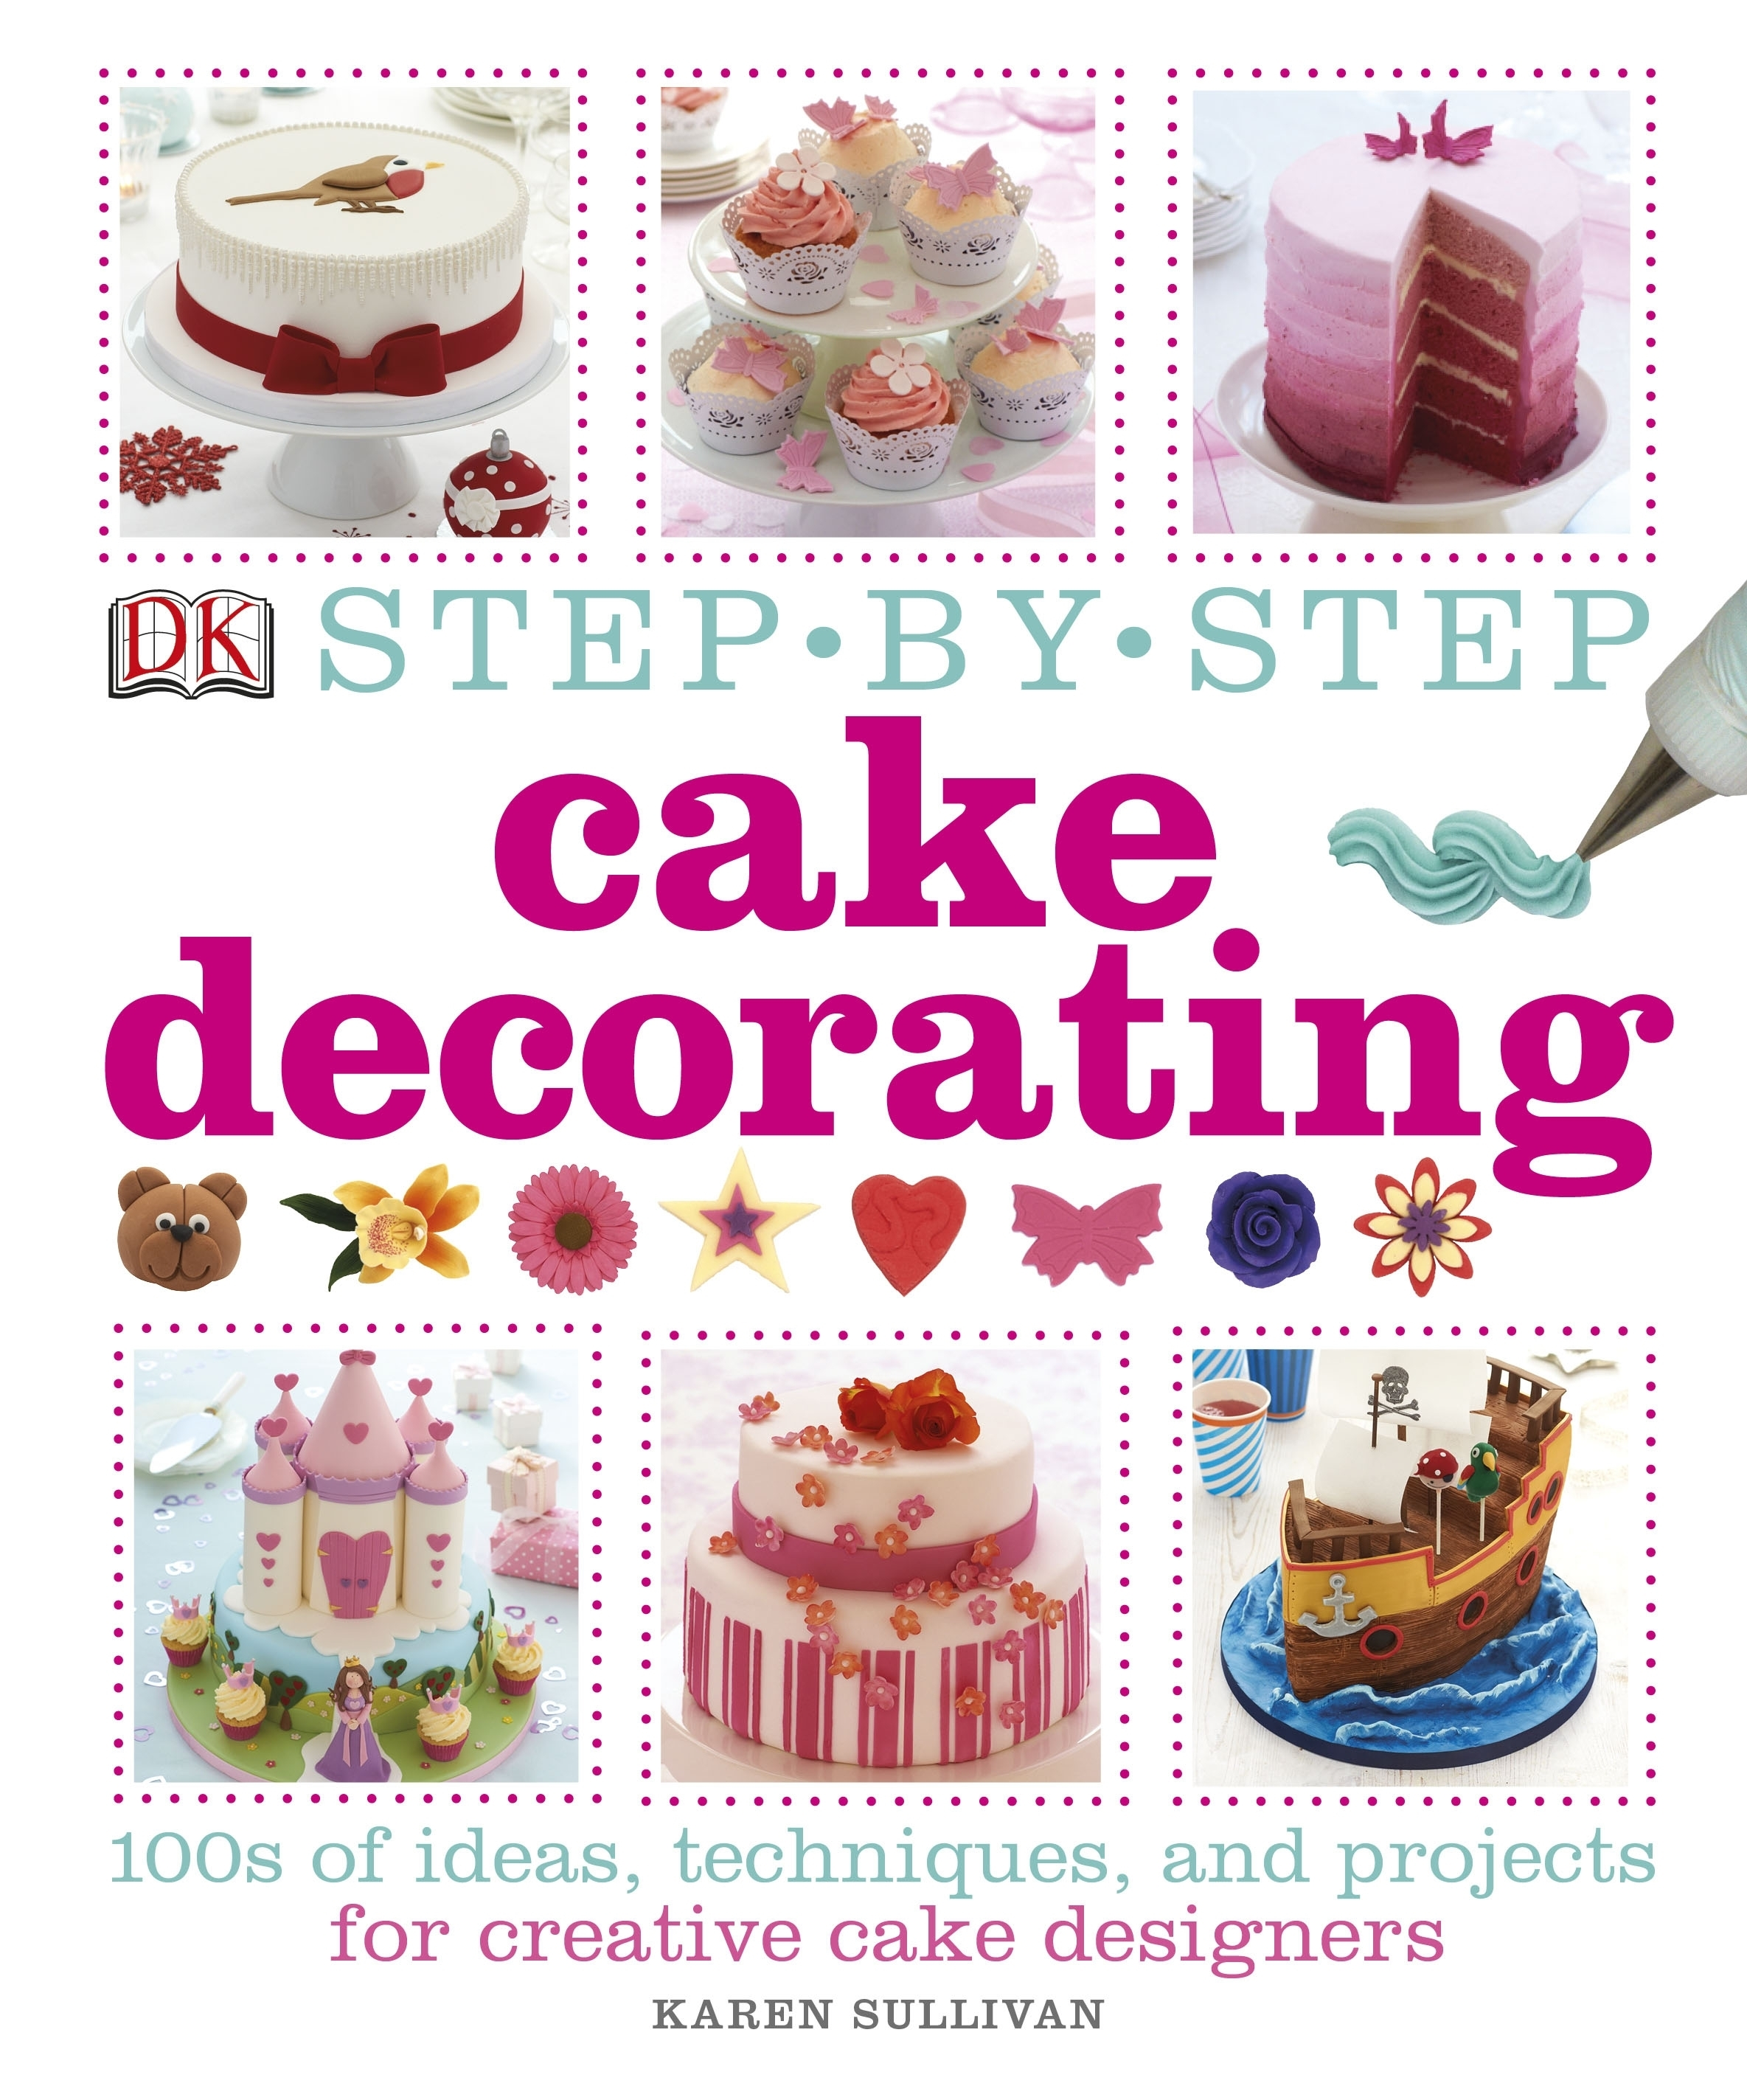 Cupcake Decorating Ideas Step By Step : Step-by-Step Cake Decorating by DK - Penguin Books Australia